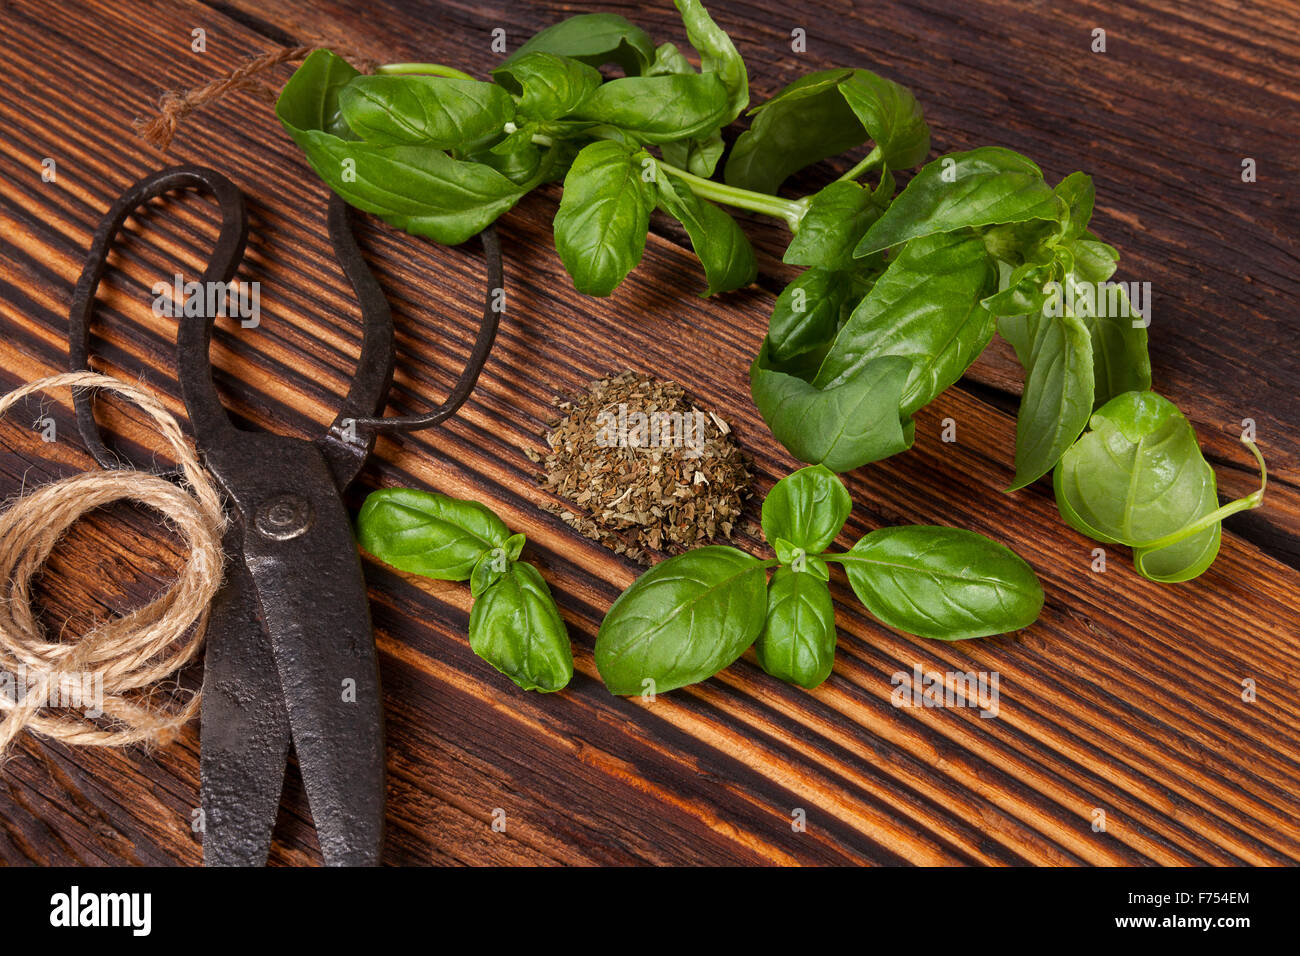 Aromatic culinary herbs, basil. Fresh and dry basil herb with vintage scissors on rustic wooden background. Stock Photo